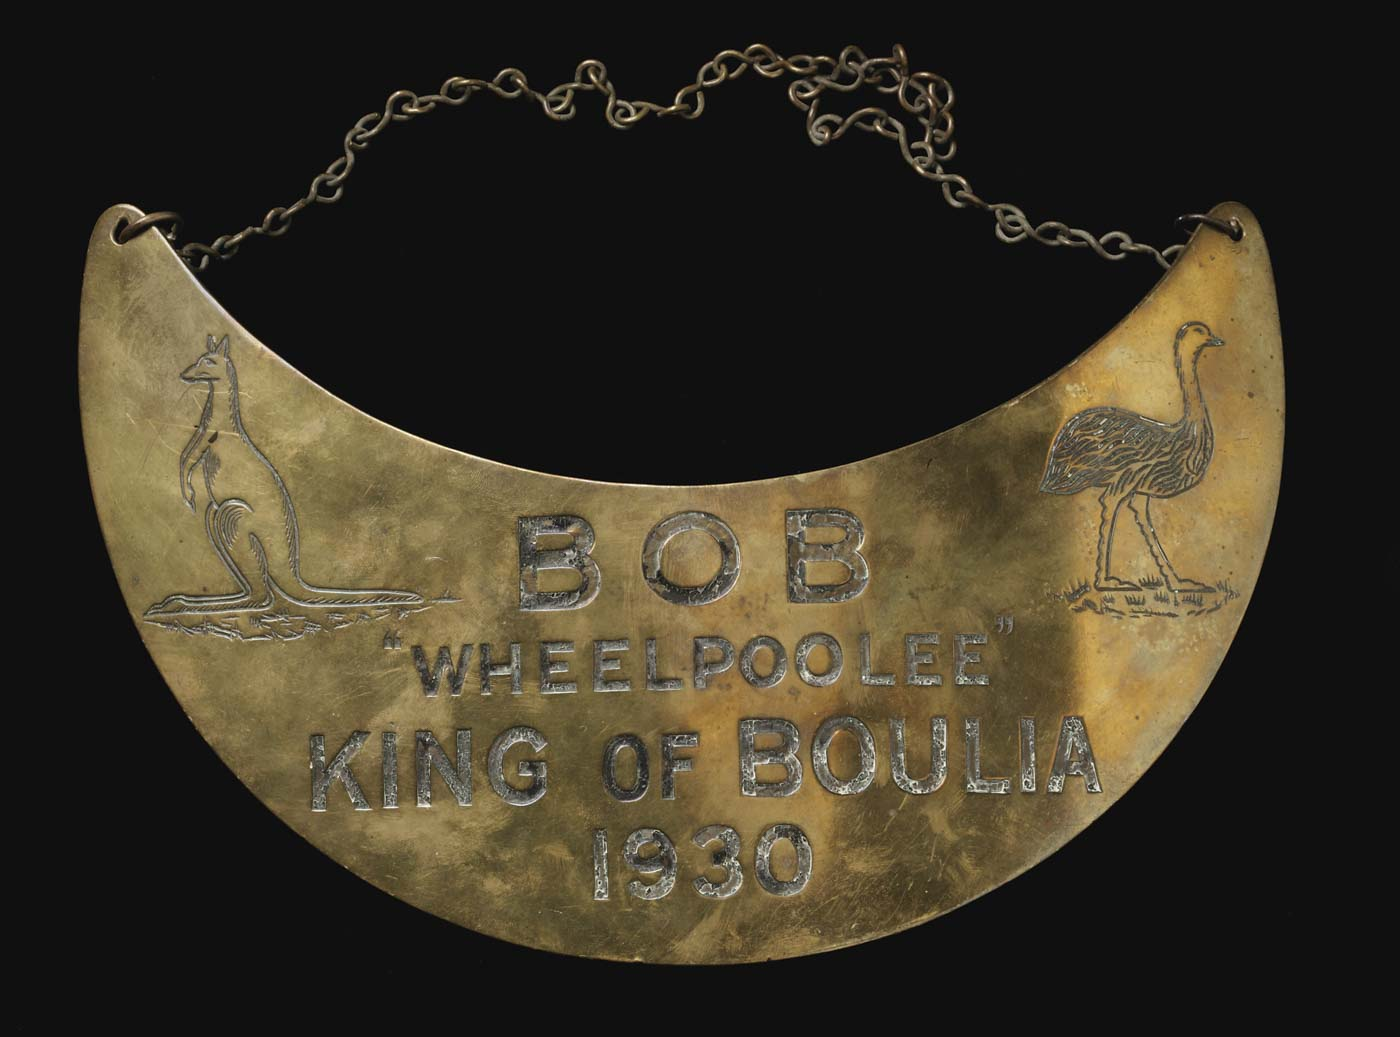 Crescent-shaped breastplate with chain at top, engraved with text 'Bob 'Wheelpoolee', King of Boulia, 1930' and images of a kangaroo and emu. - click to view larger image